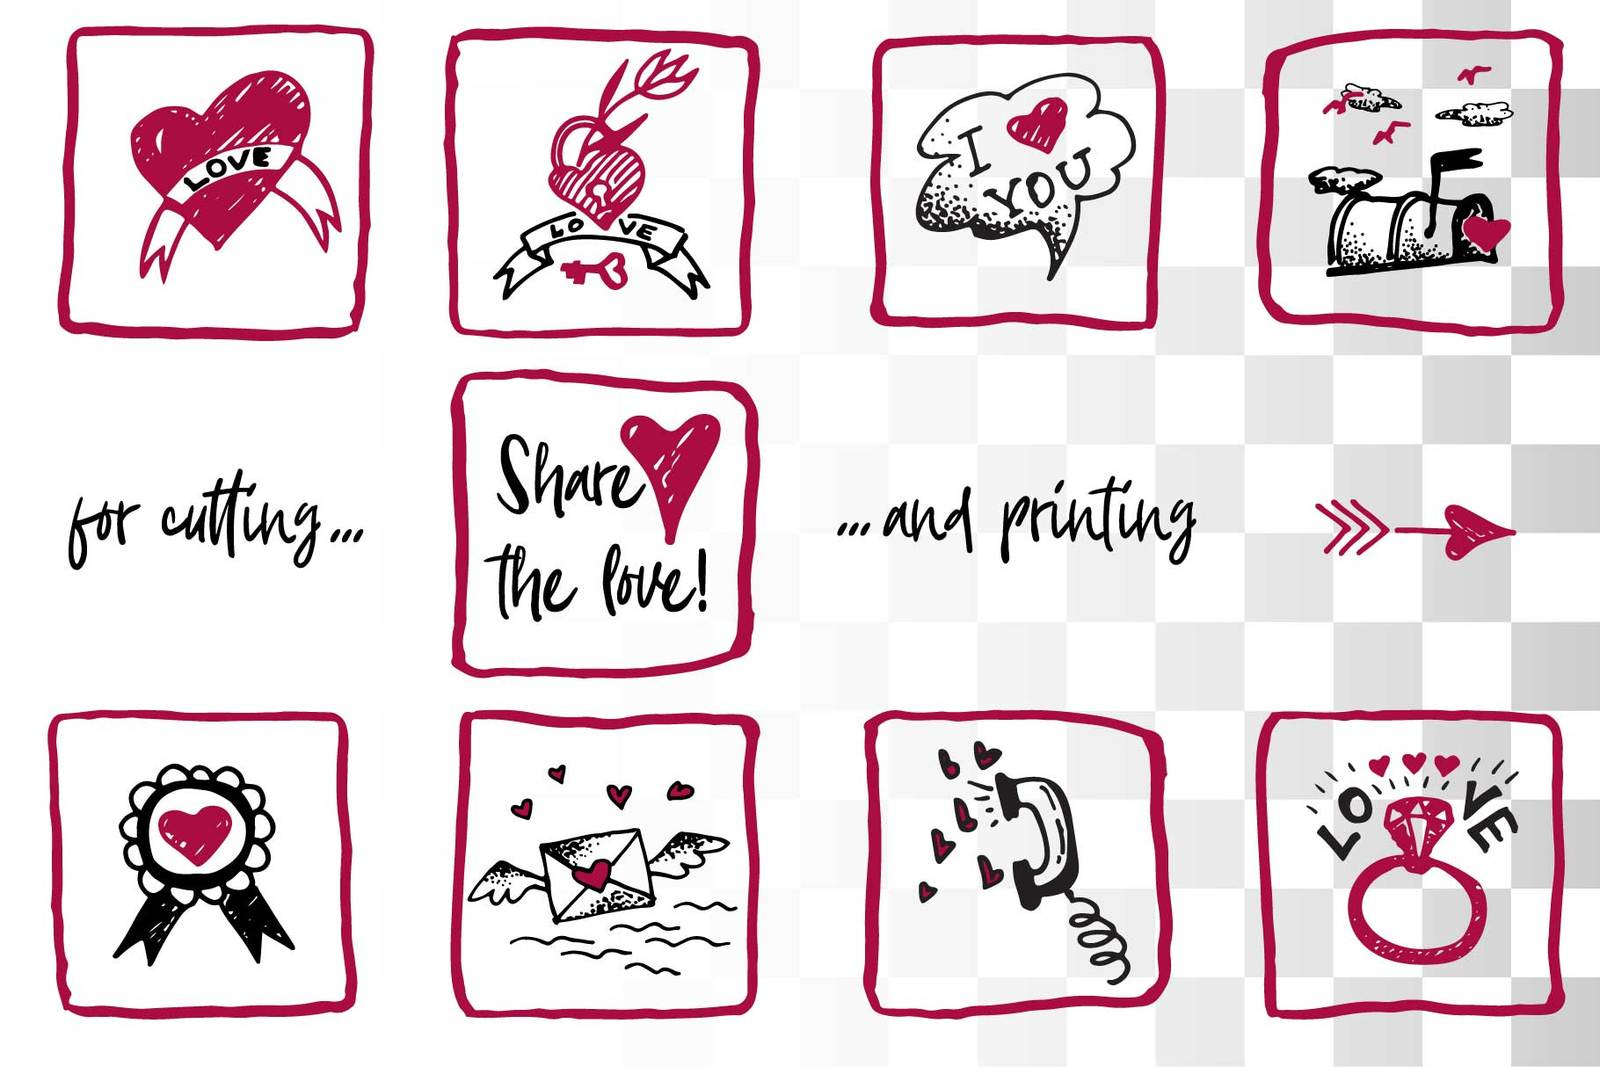 Lovely valentines day set - #4 SVG collection